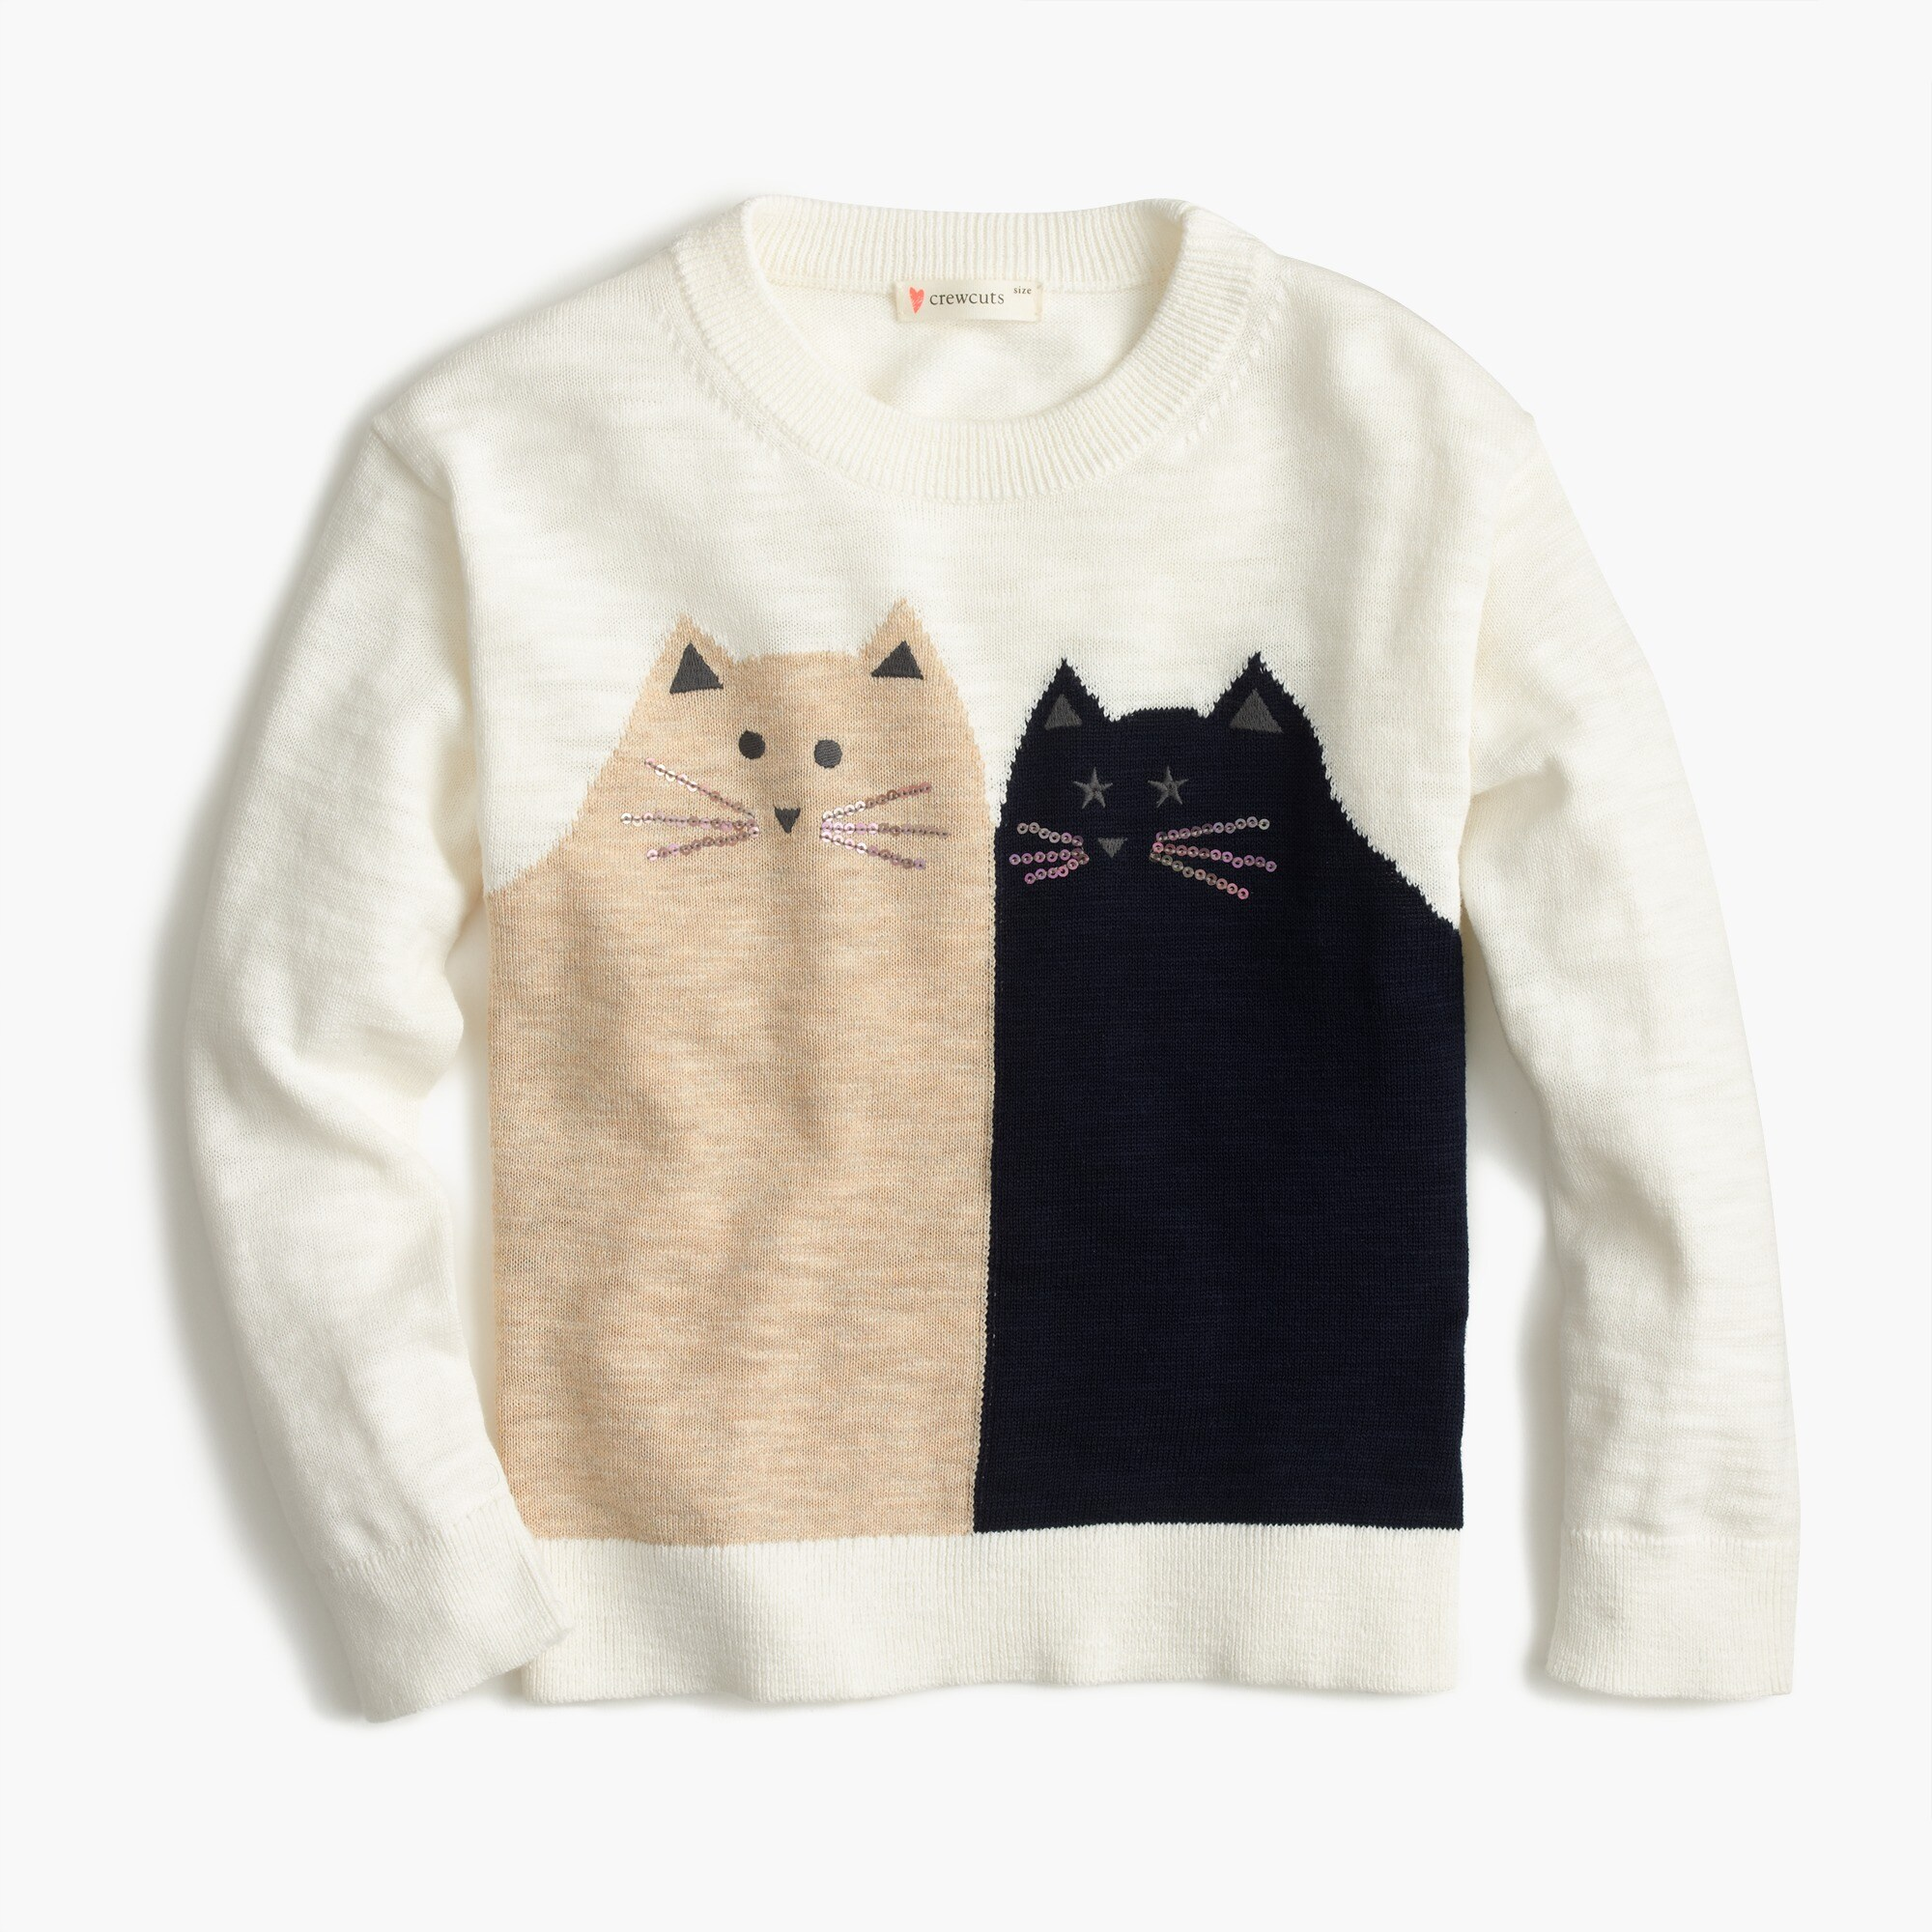 Image 1 for Girls' kitty friends popover sweater